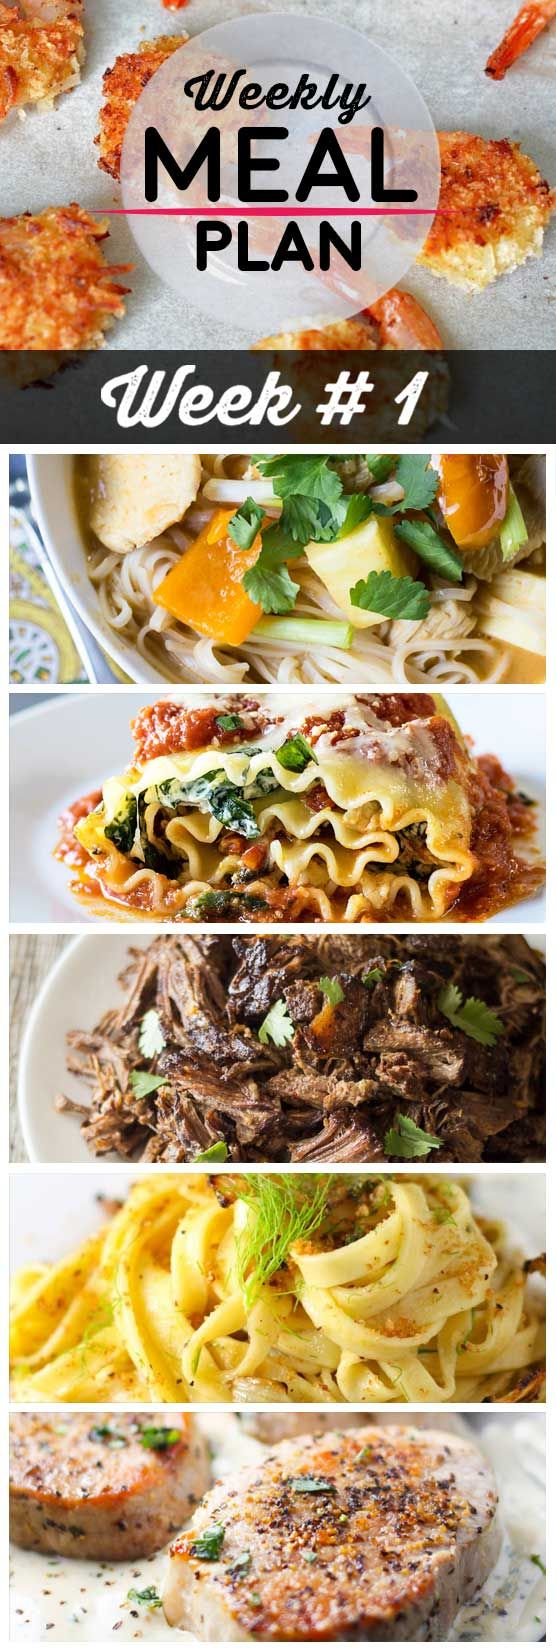 Weekly Meal Plan #1! A simple weekly meal plan to help you keep things tasty throughout the week, featuring coconut shrimp, barbaoca beef, lasagna roll-ups, and more! | HomemadeHooplah.com